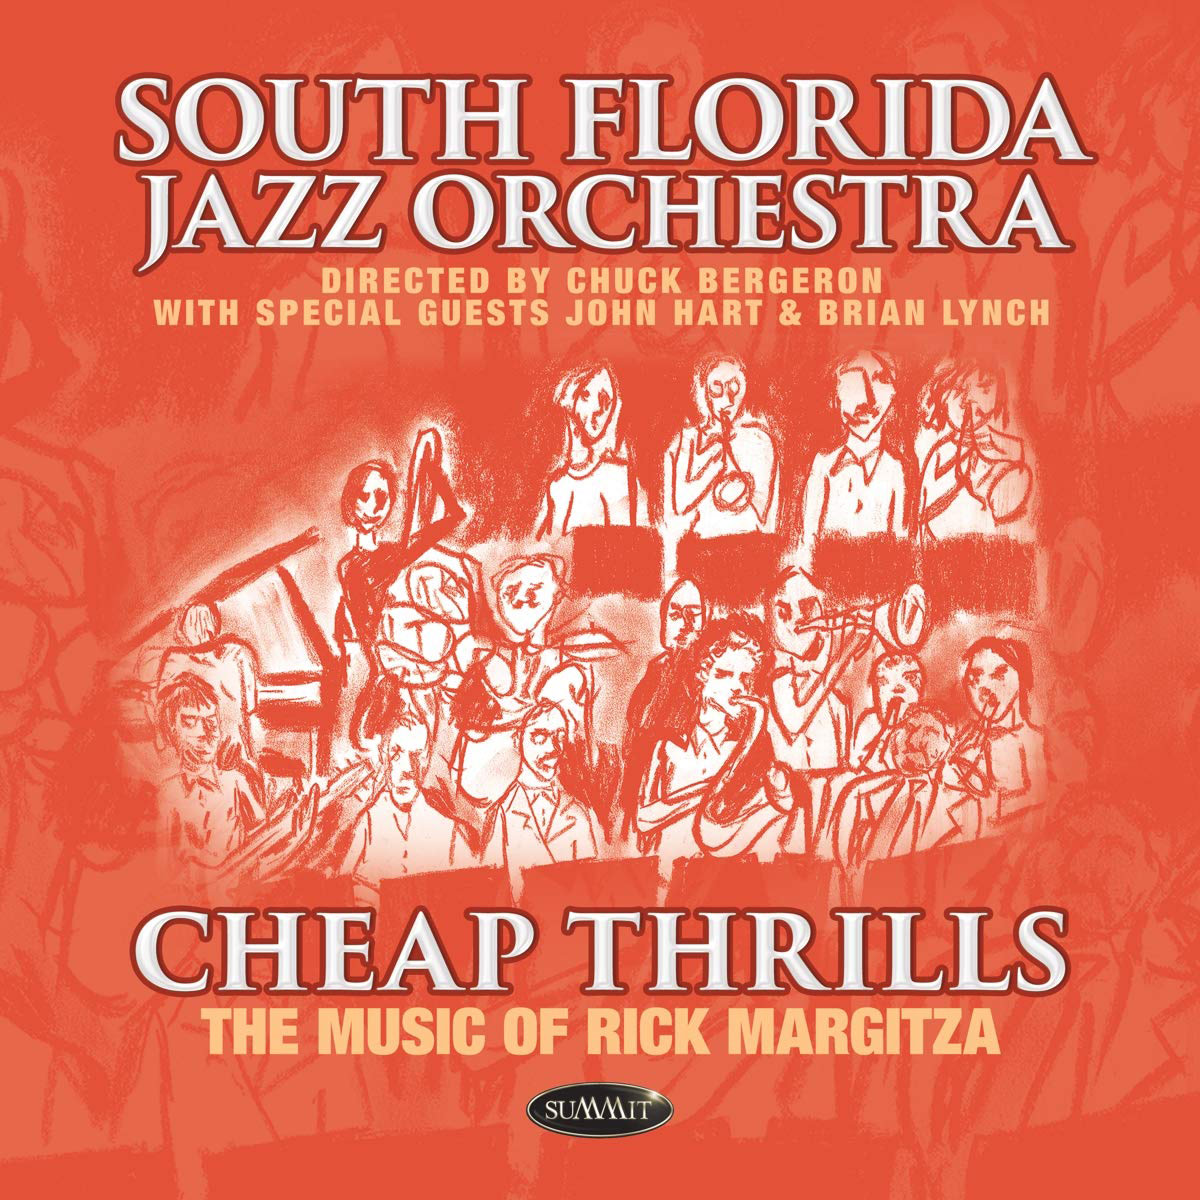 Cheap Thrills- The Music Of Rick Margitza